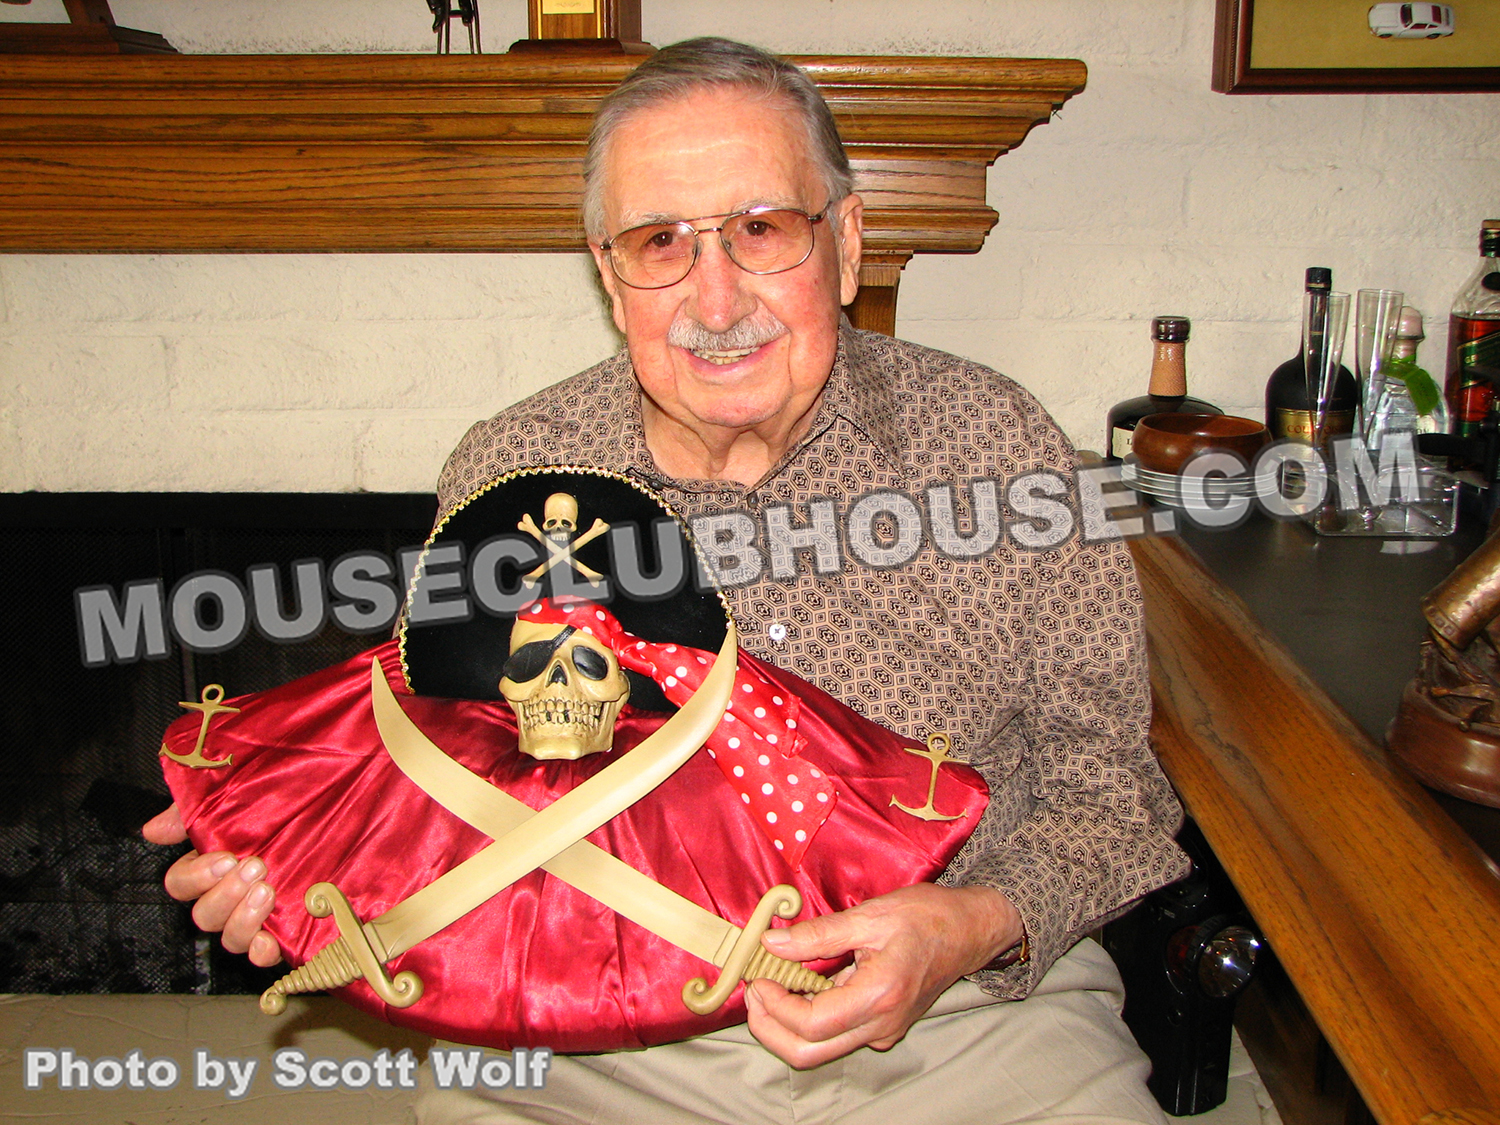 X Atencio with a replica of the Jolly Roger that he provides the voice for and wrote the dialogue for